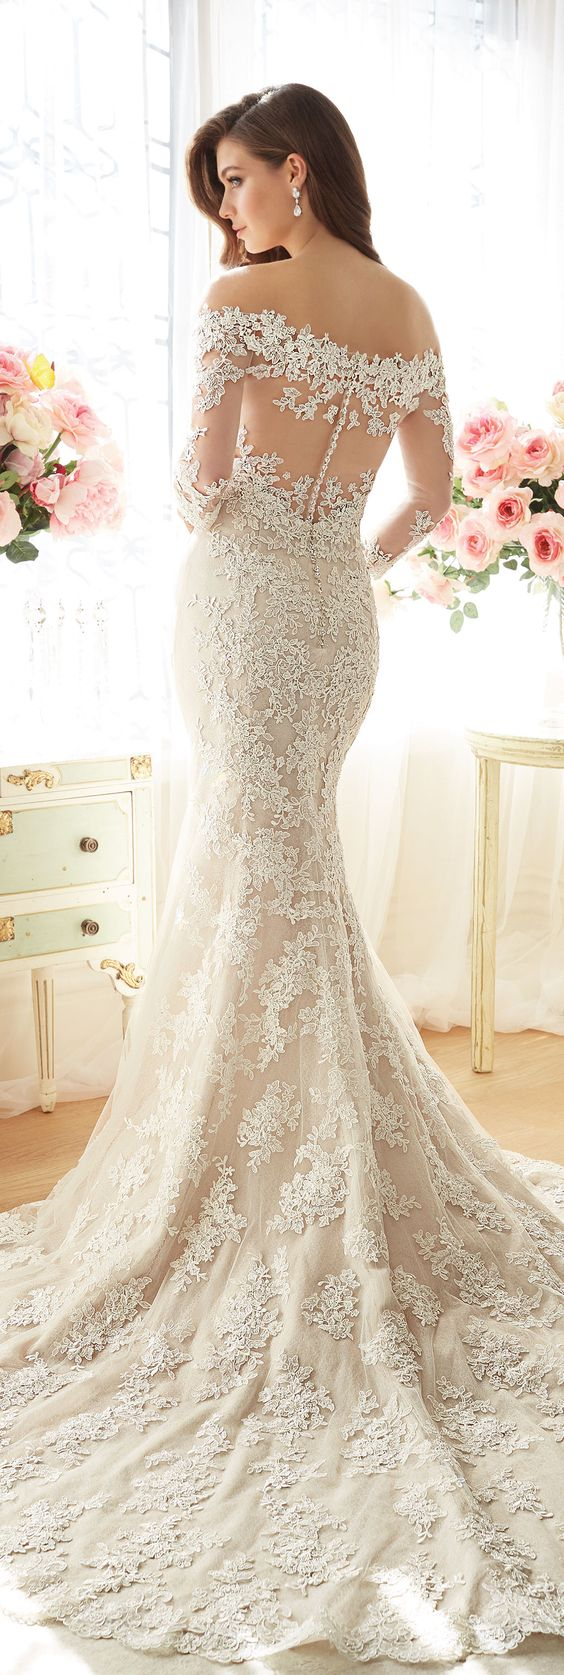 The Sophia Tolli Spring 2016 Wedding Dress Collection - Style No. Y11632 - Riona #laceweddingdresswithsleeves: